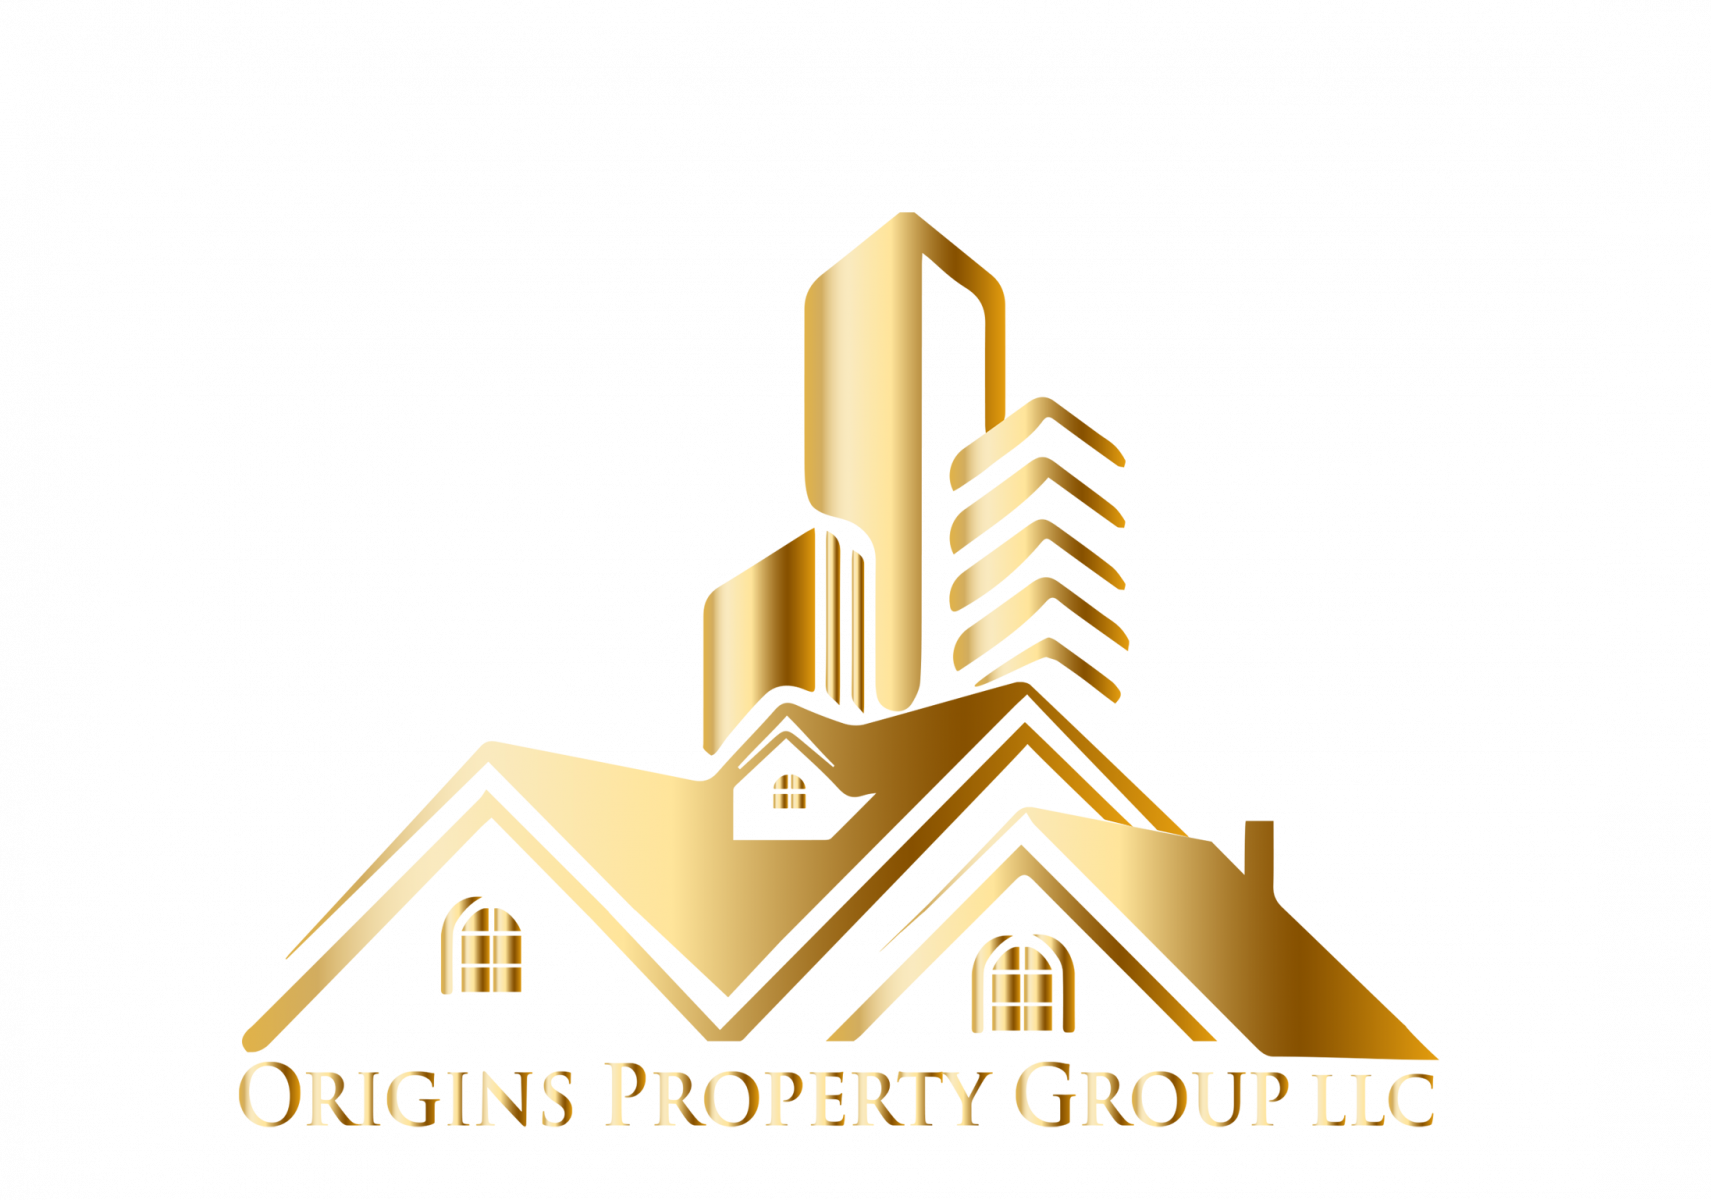 ORIGINS PROPERTY GROUP, LLC logo